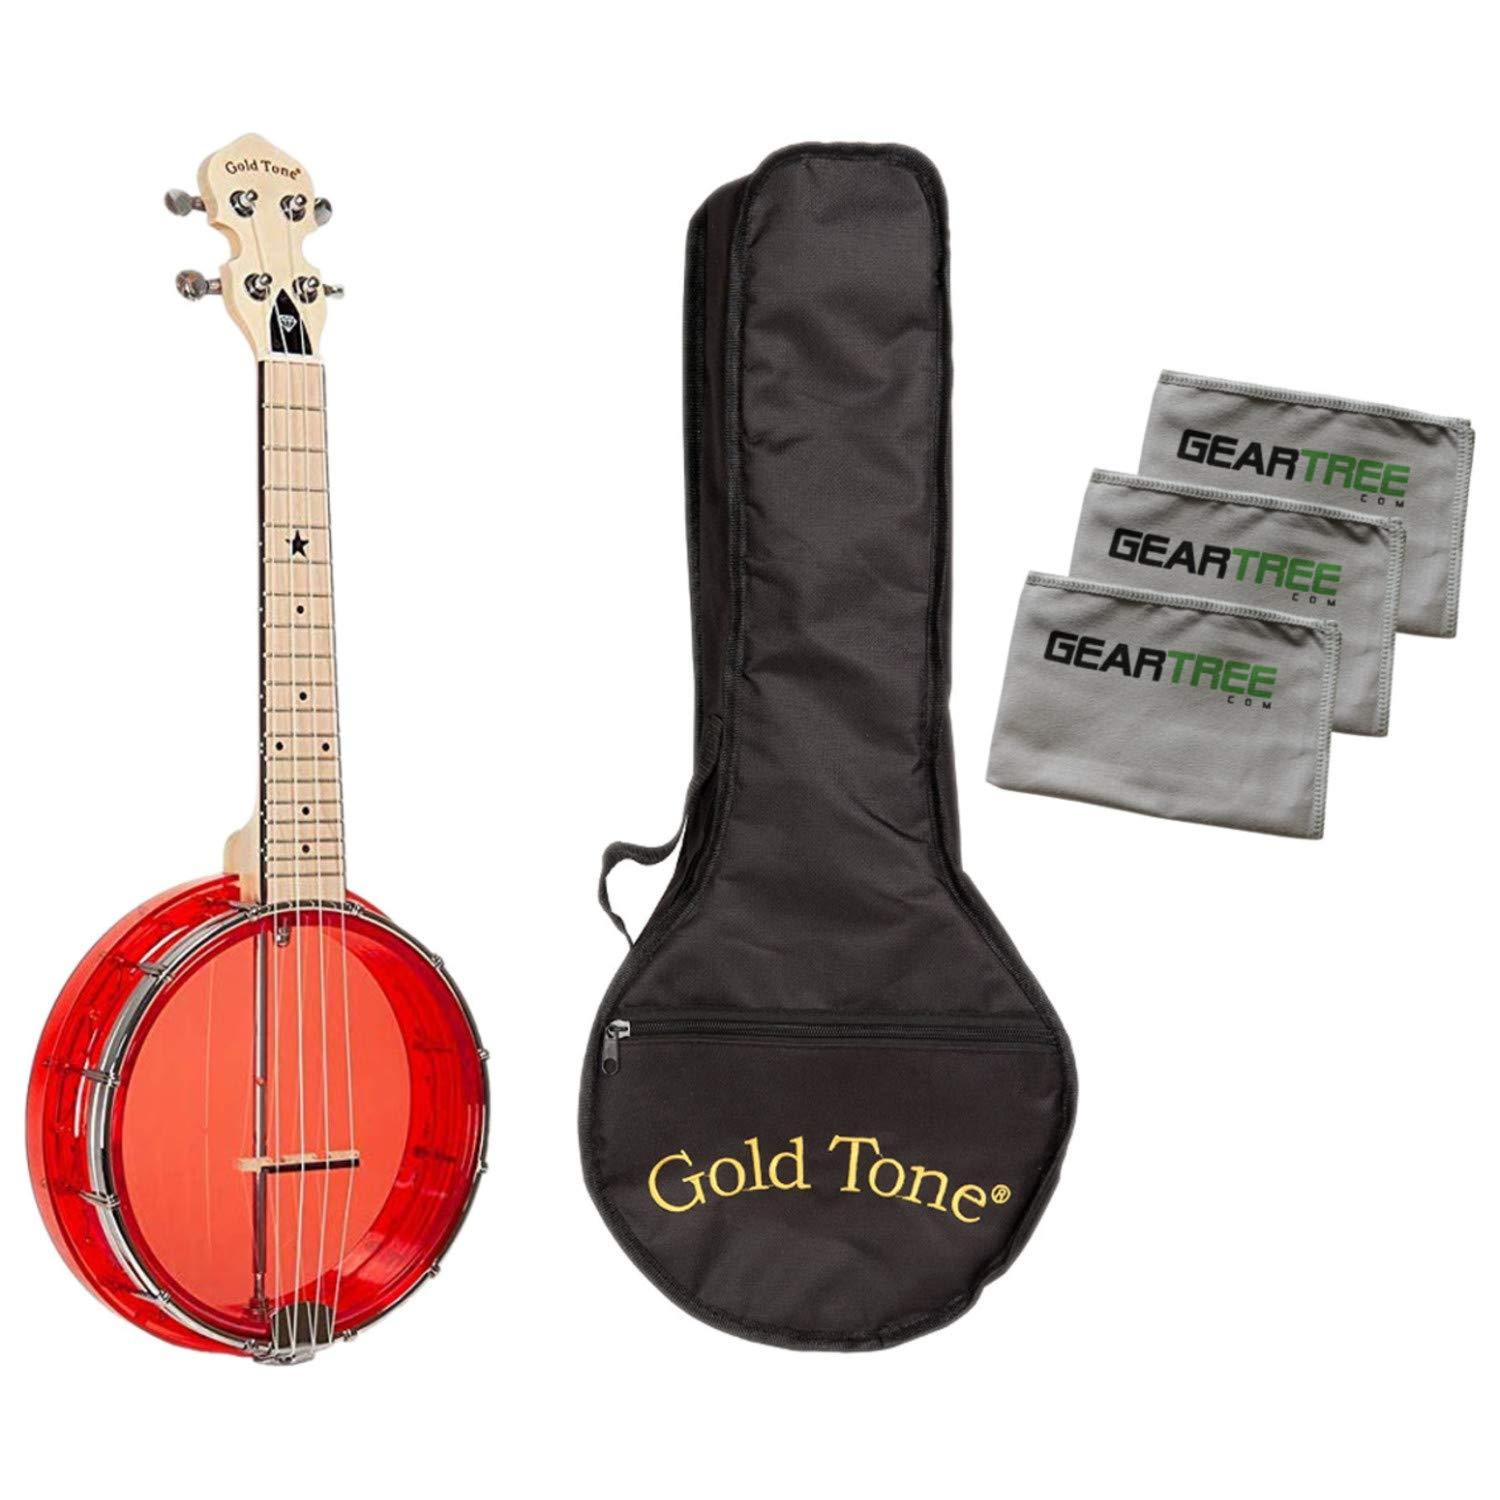 Gold Tone Little Gem Ruby Clear Banjo Ukulele Bundle w/Bag & Cloth